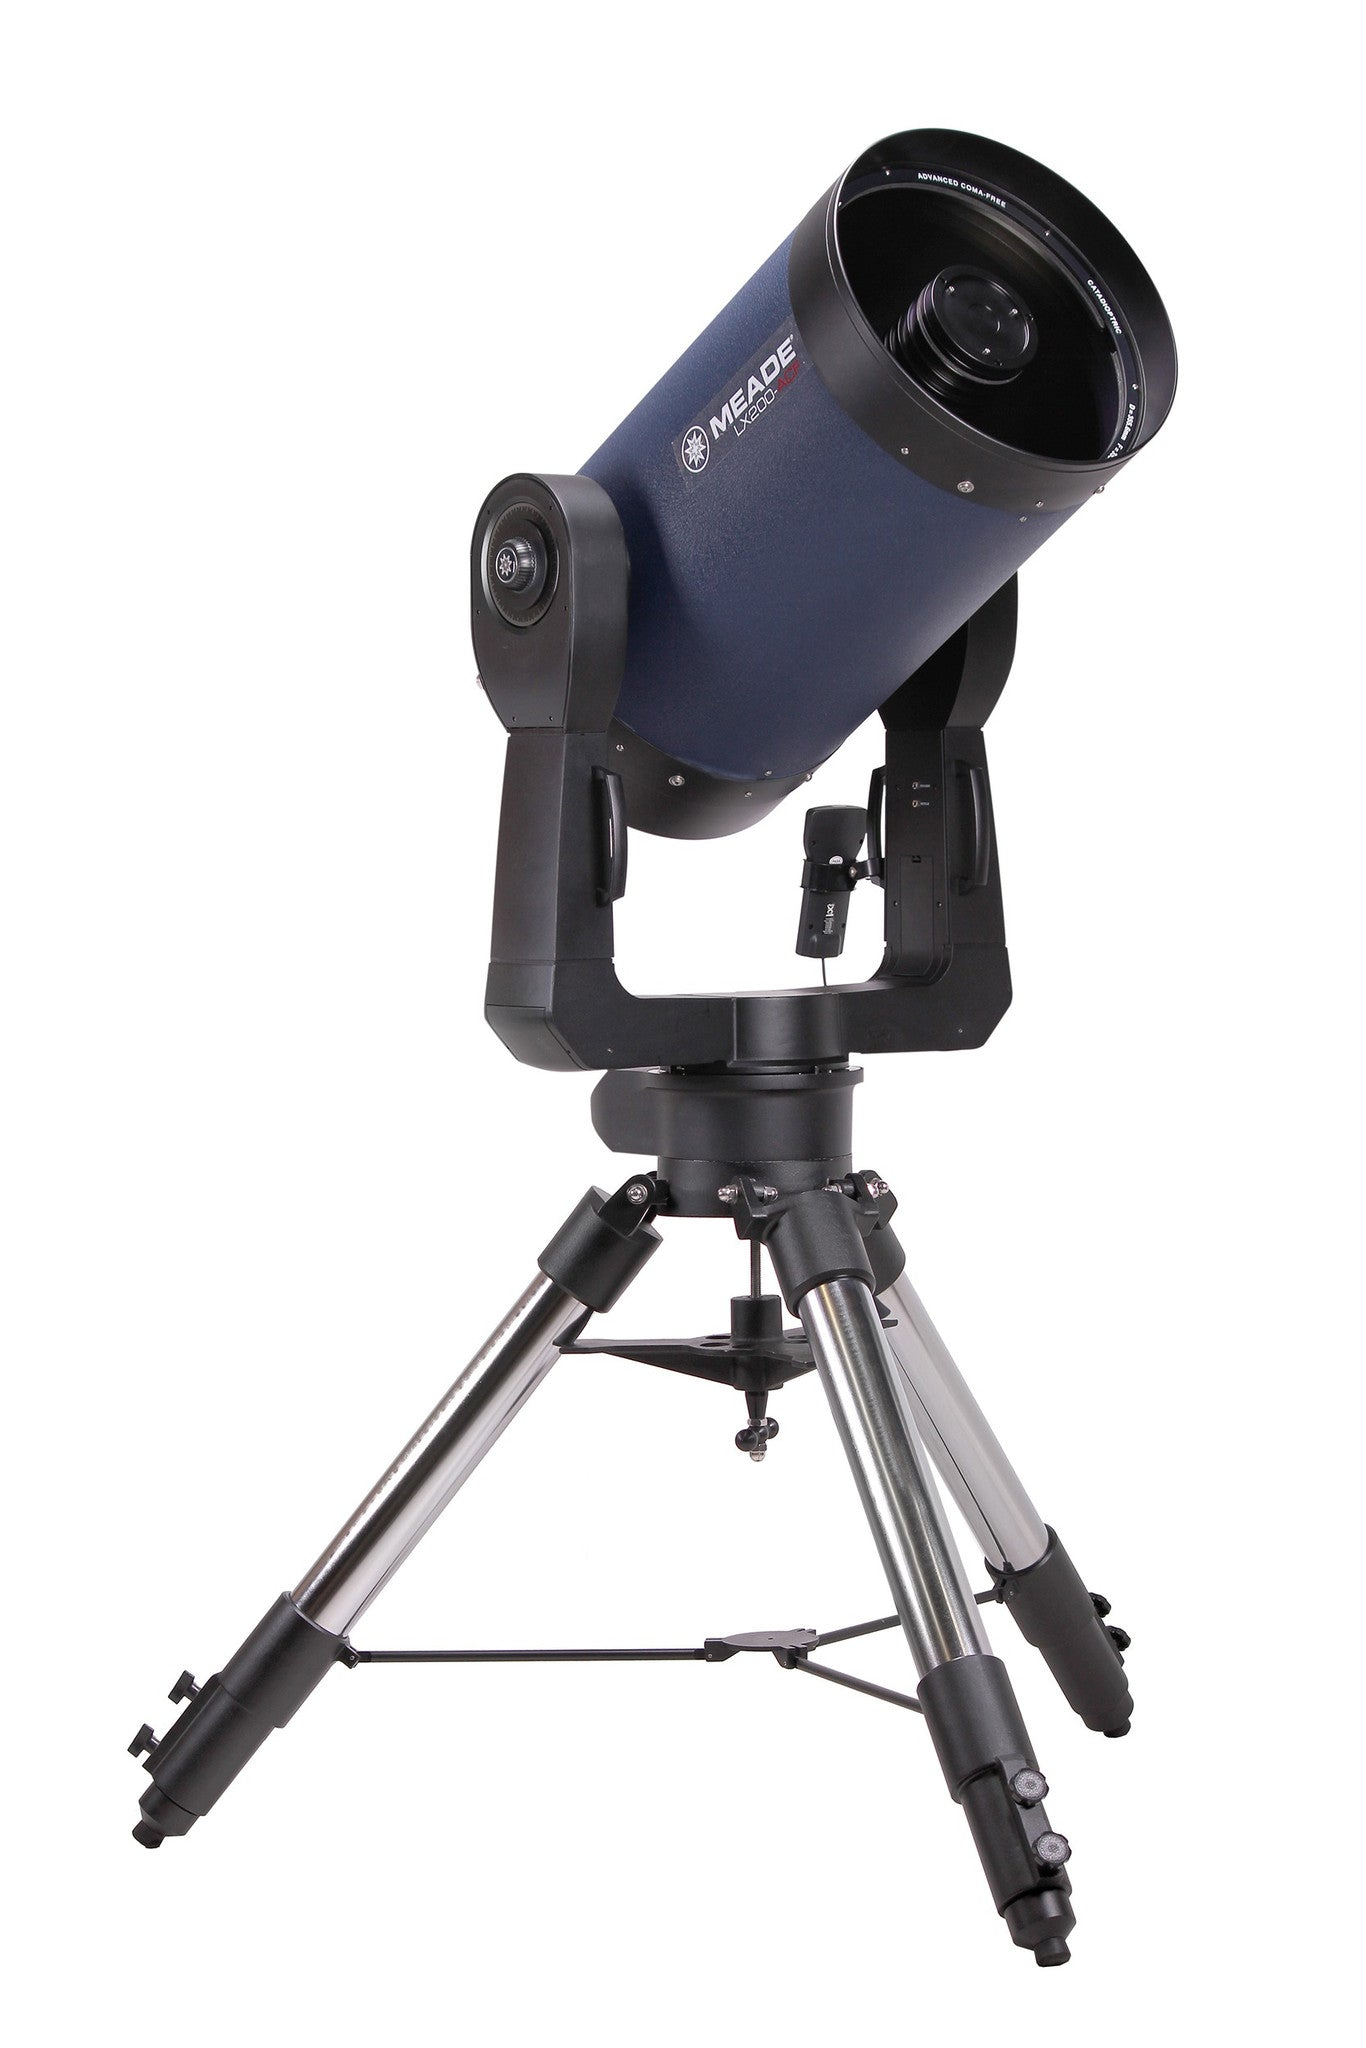 Meade 14-Inch LX200-ACF (f/10) Advanced Coma-Free Telescope 1410-60-03 - Telescopes - Meade - Helix Camera